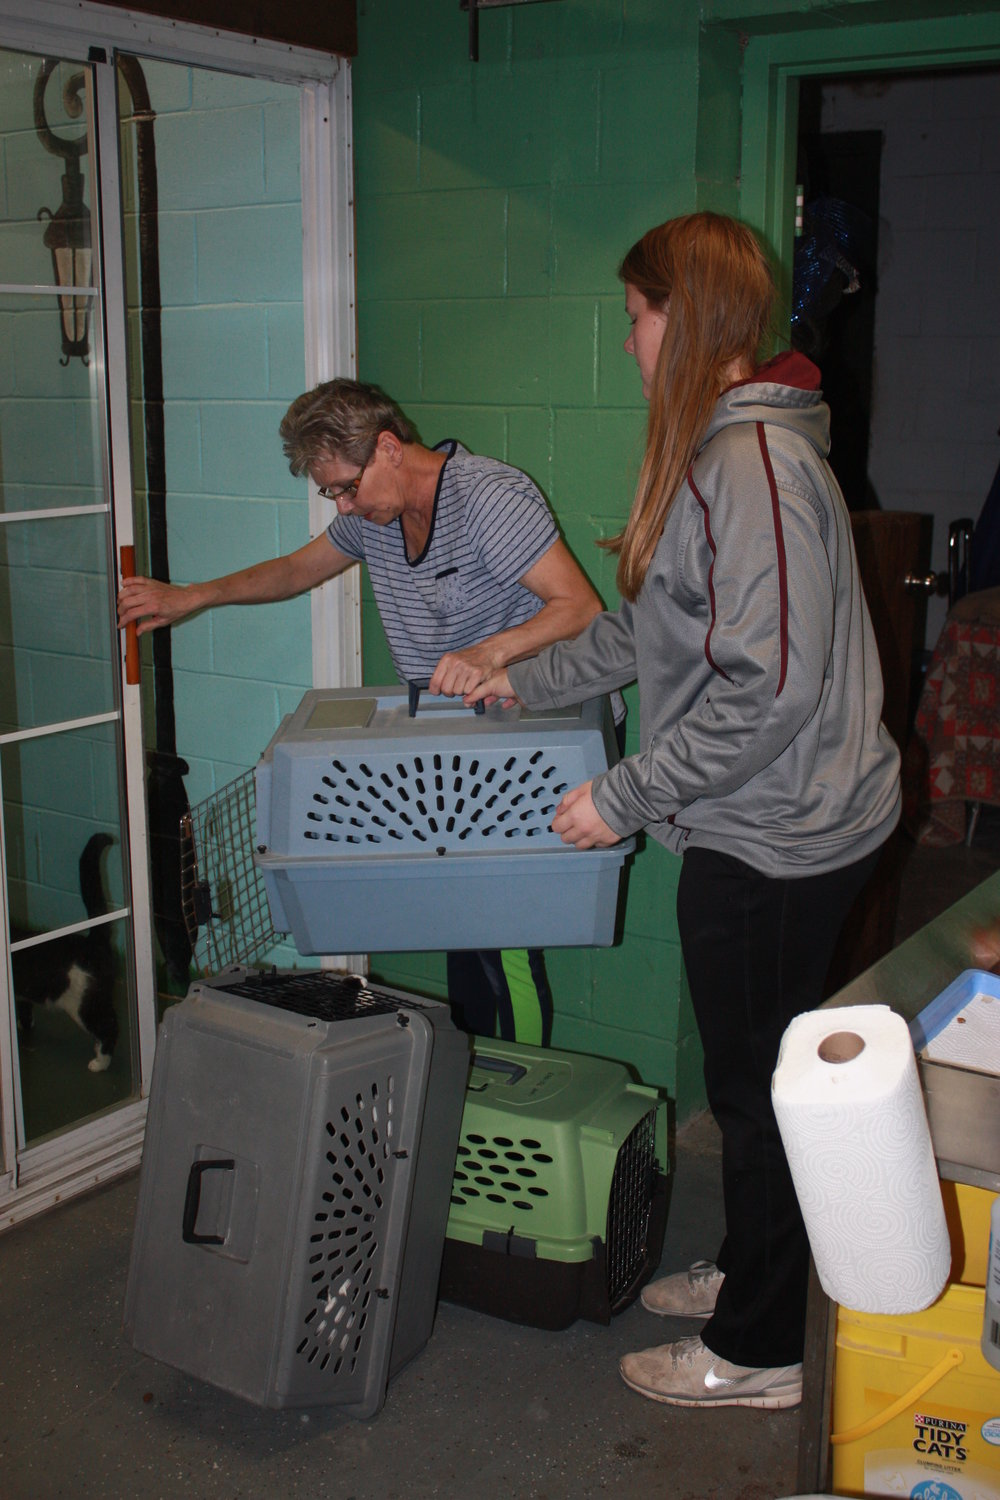 Chris and Allison collecting the free roam kitties so they can clean up their space.